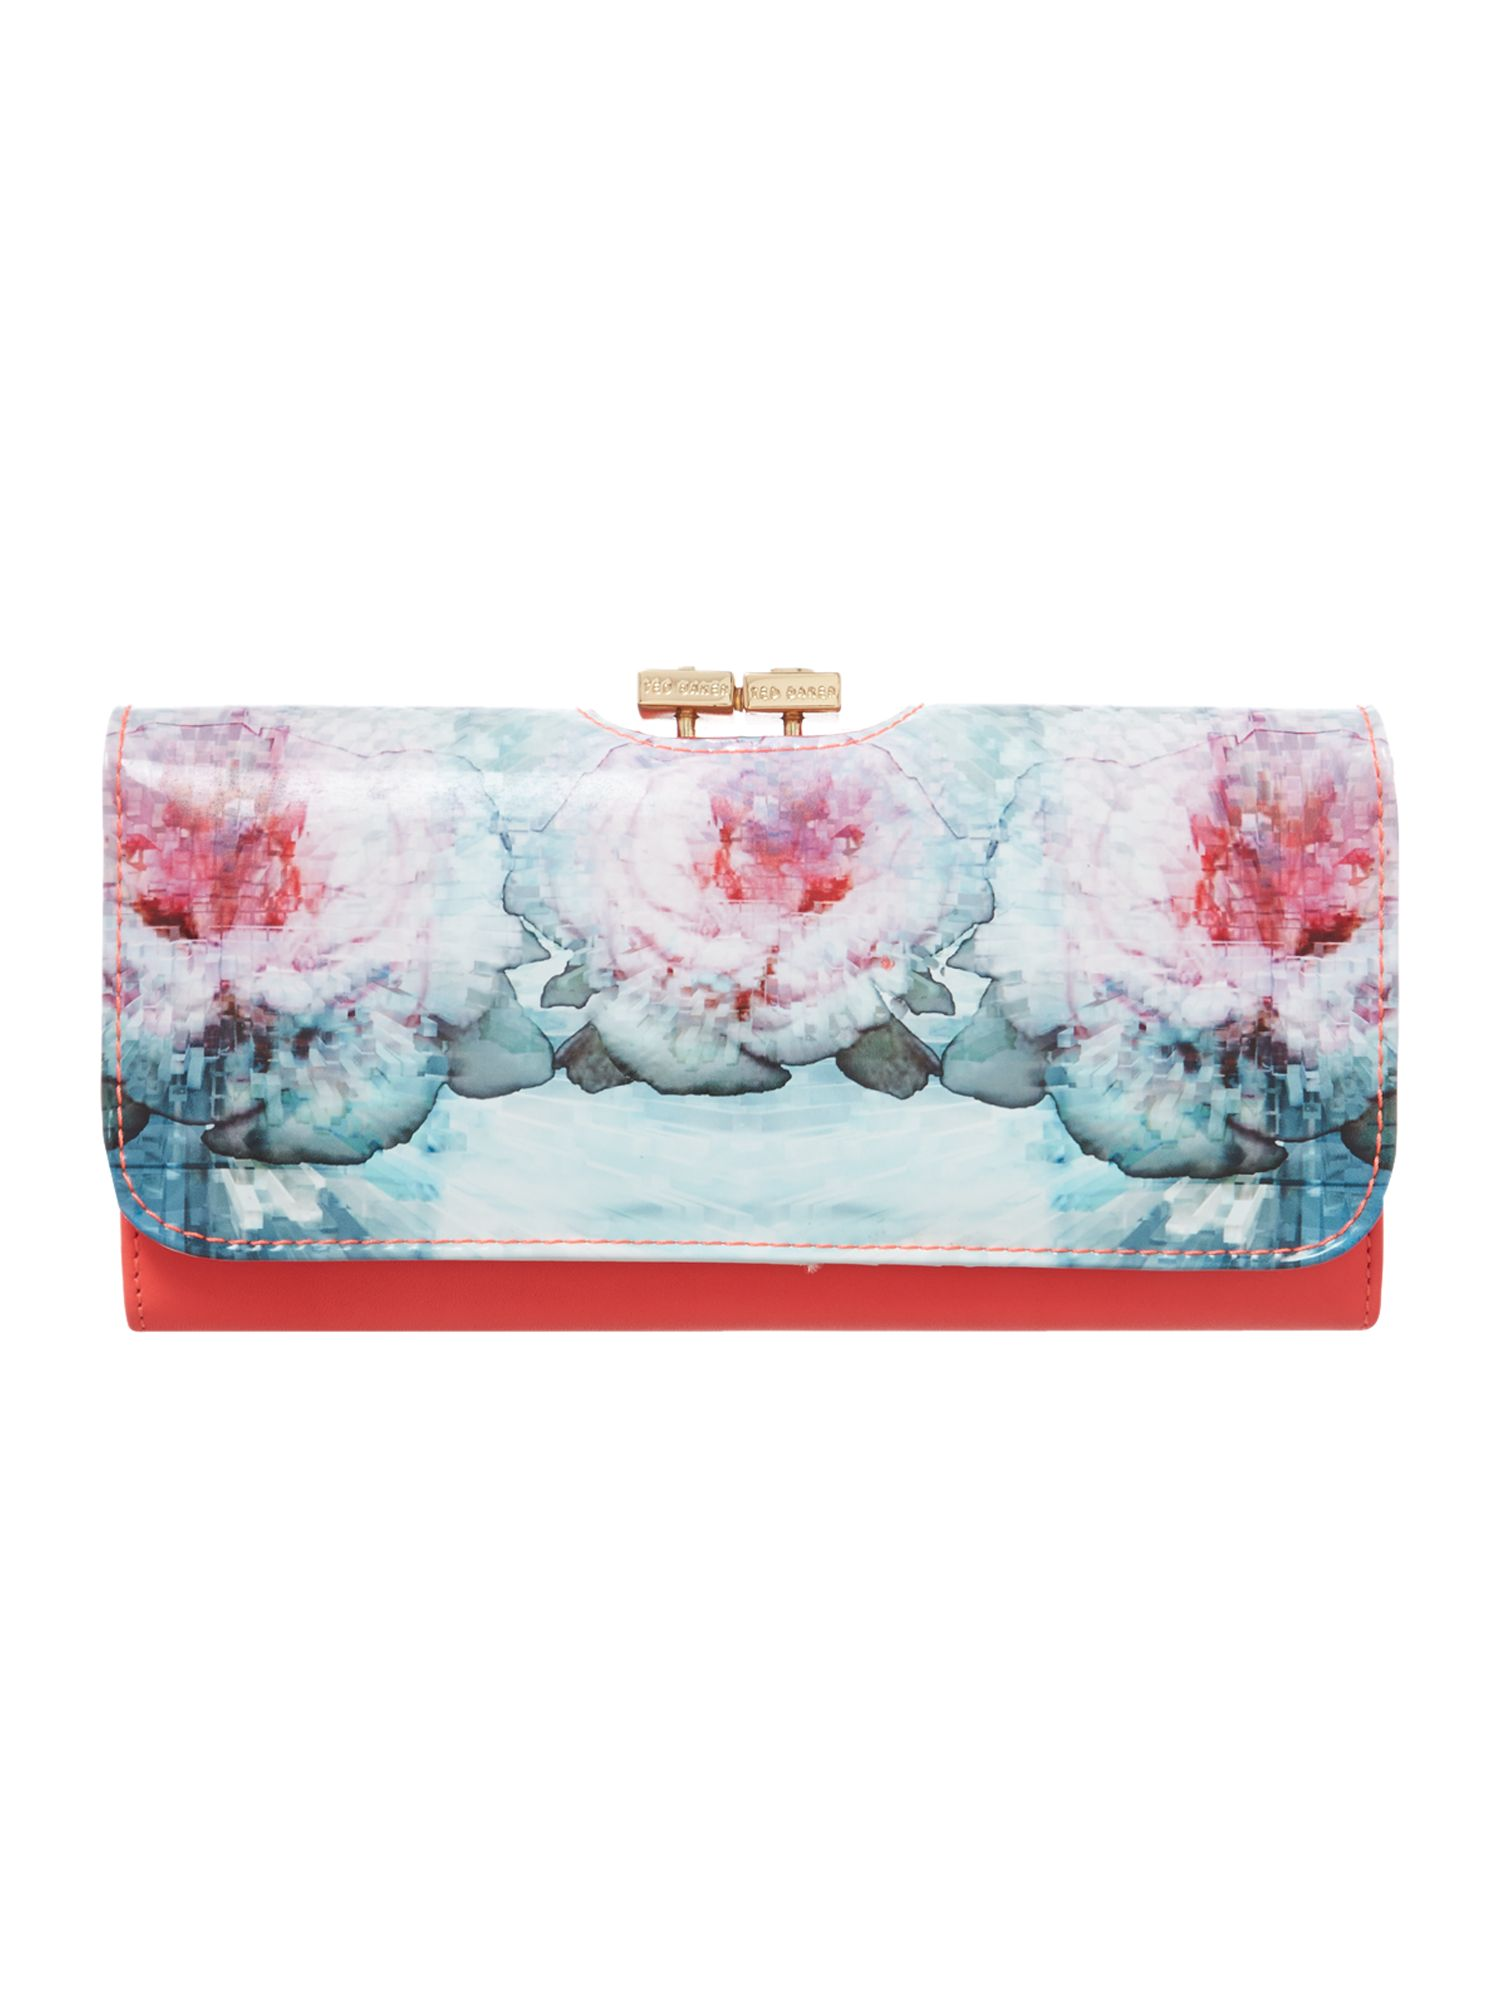 Large blue cubic print flapover purse